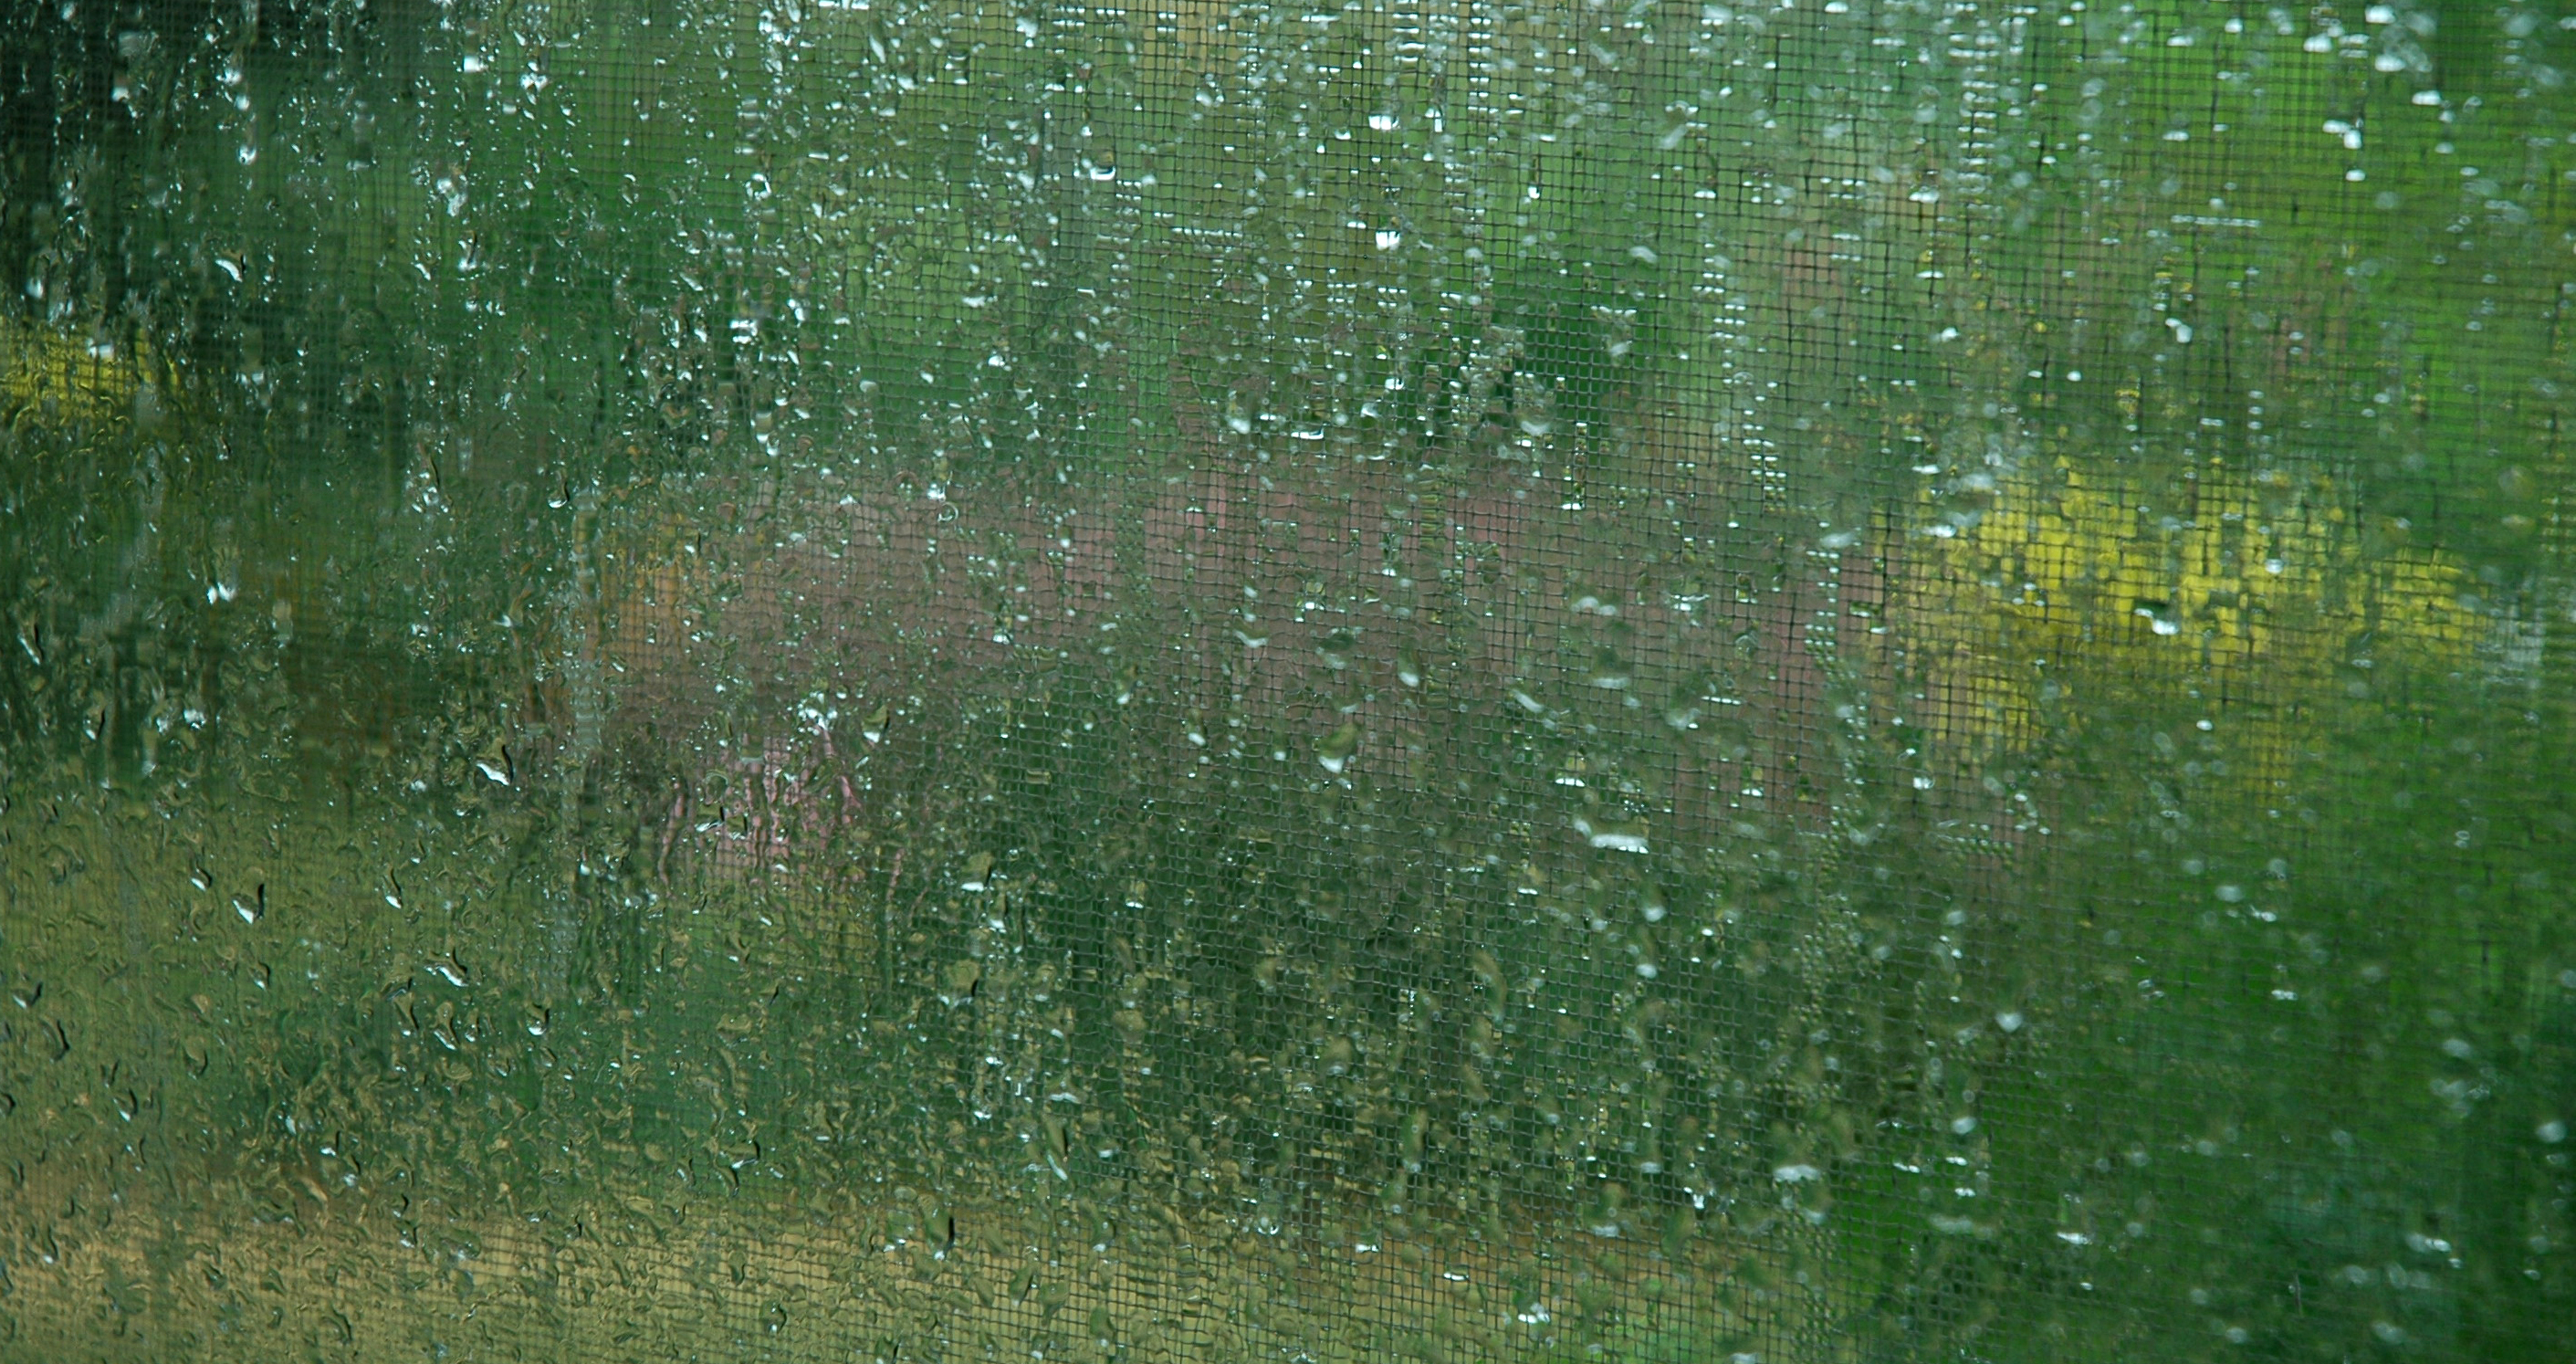 the rain came analysis The rain came pouring down when i was drowning that's when i could finally breathe and by morning gone was any trace of you i think i am finally clean rain came pouring down when i was drowning that's when i could finally breathe.